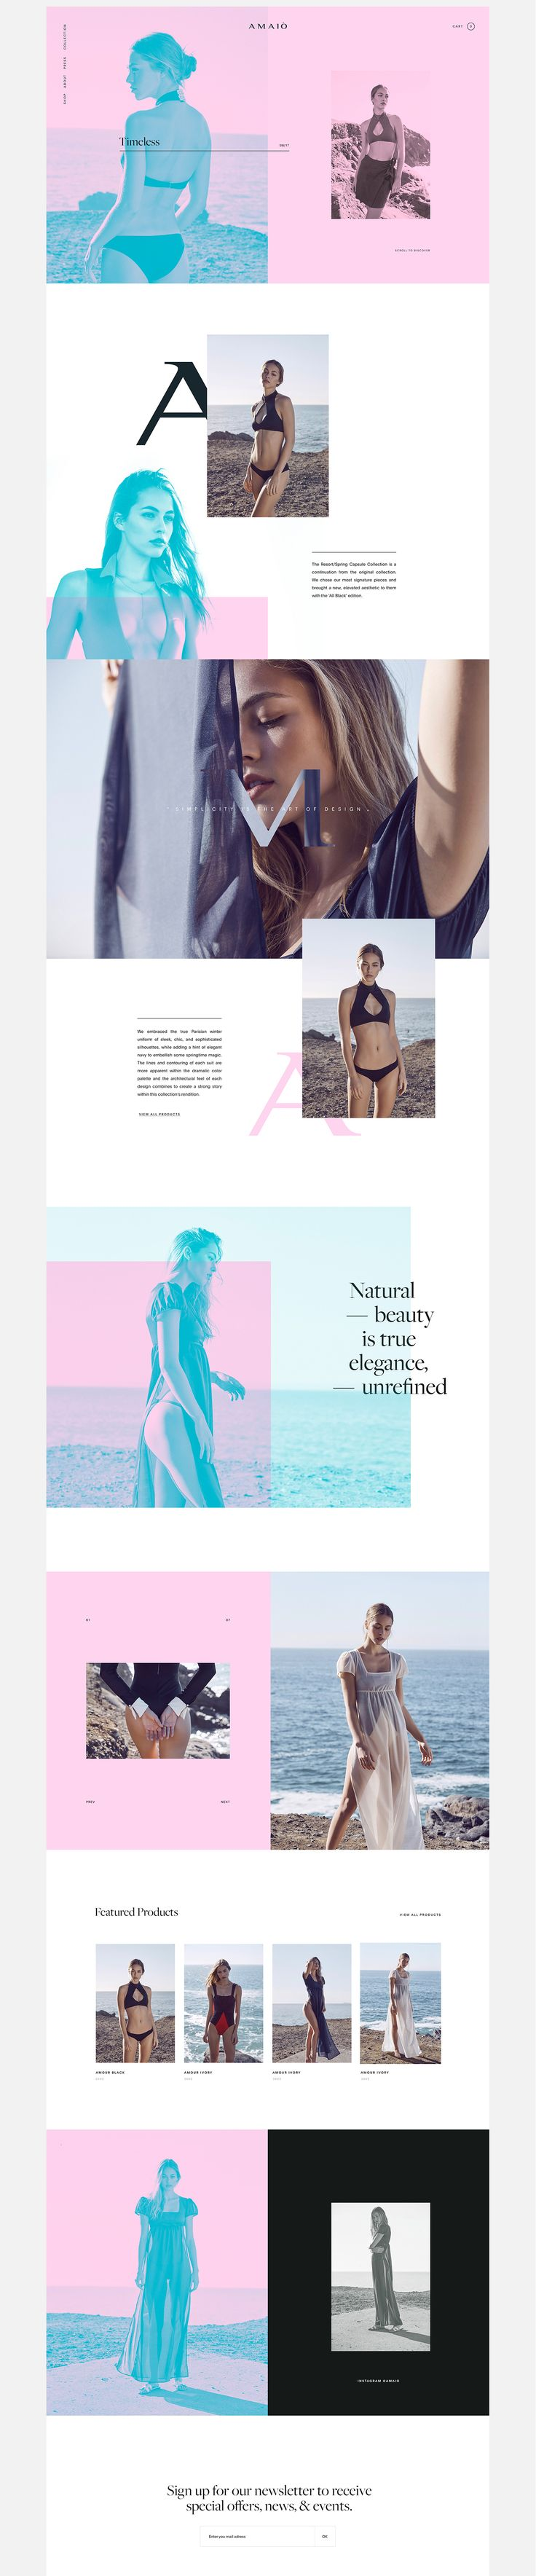 Amaio - Ecommerce Website on Behance